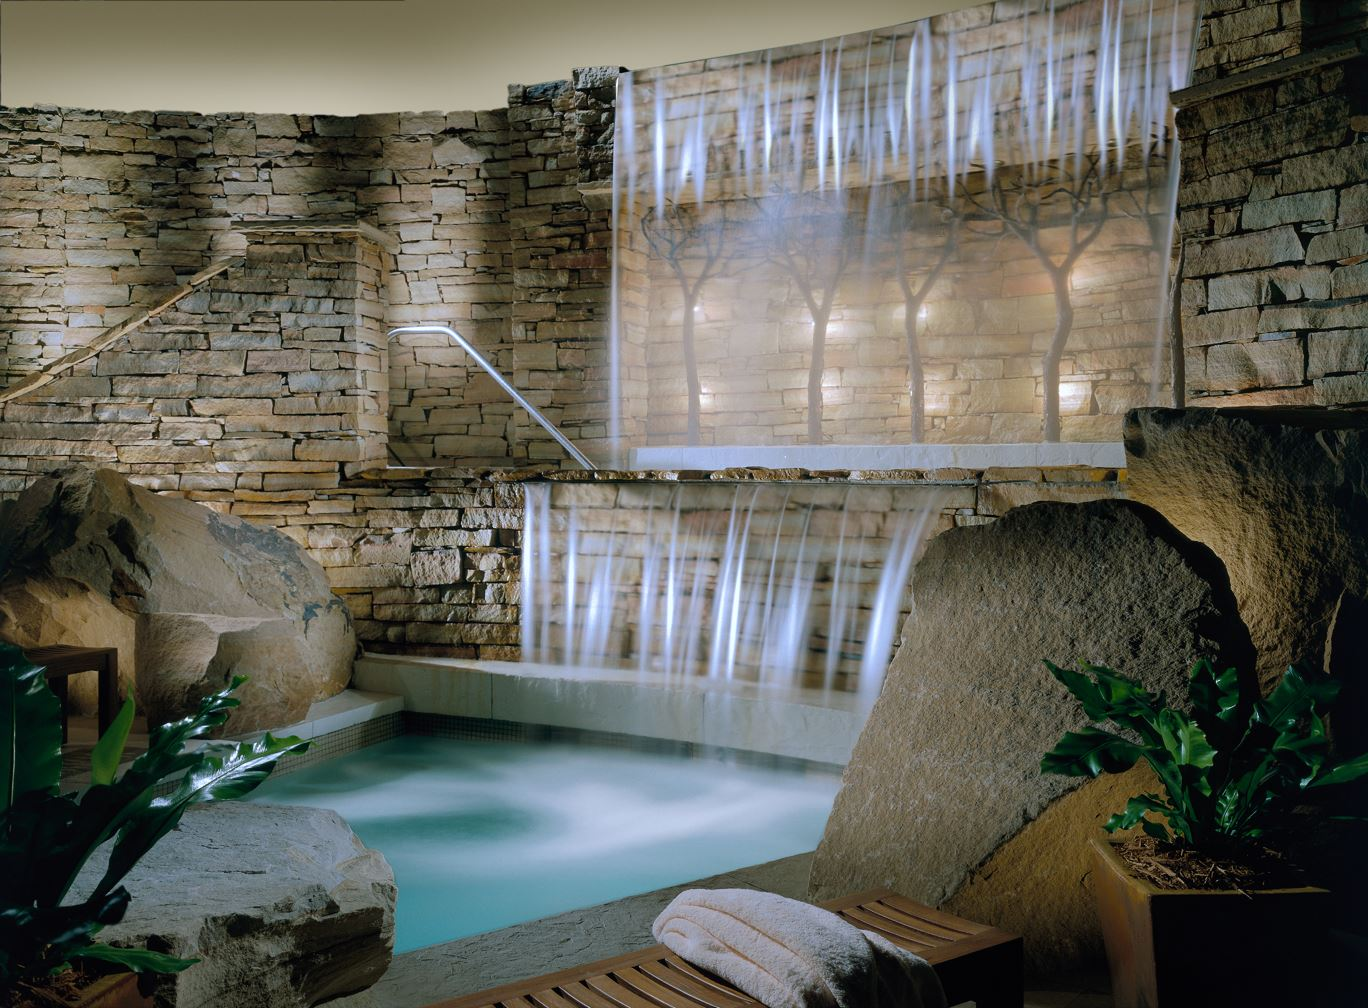 The Lodge at Woodloch - A top US destination spa located in the Pocono Mountains in PA